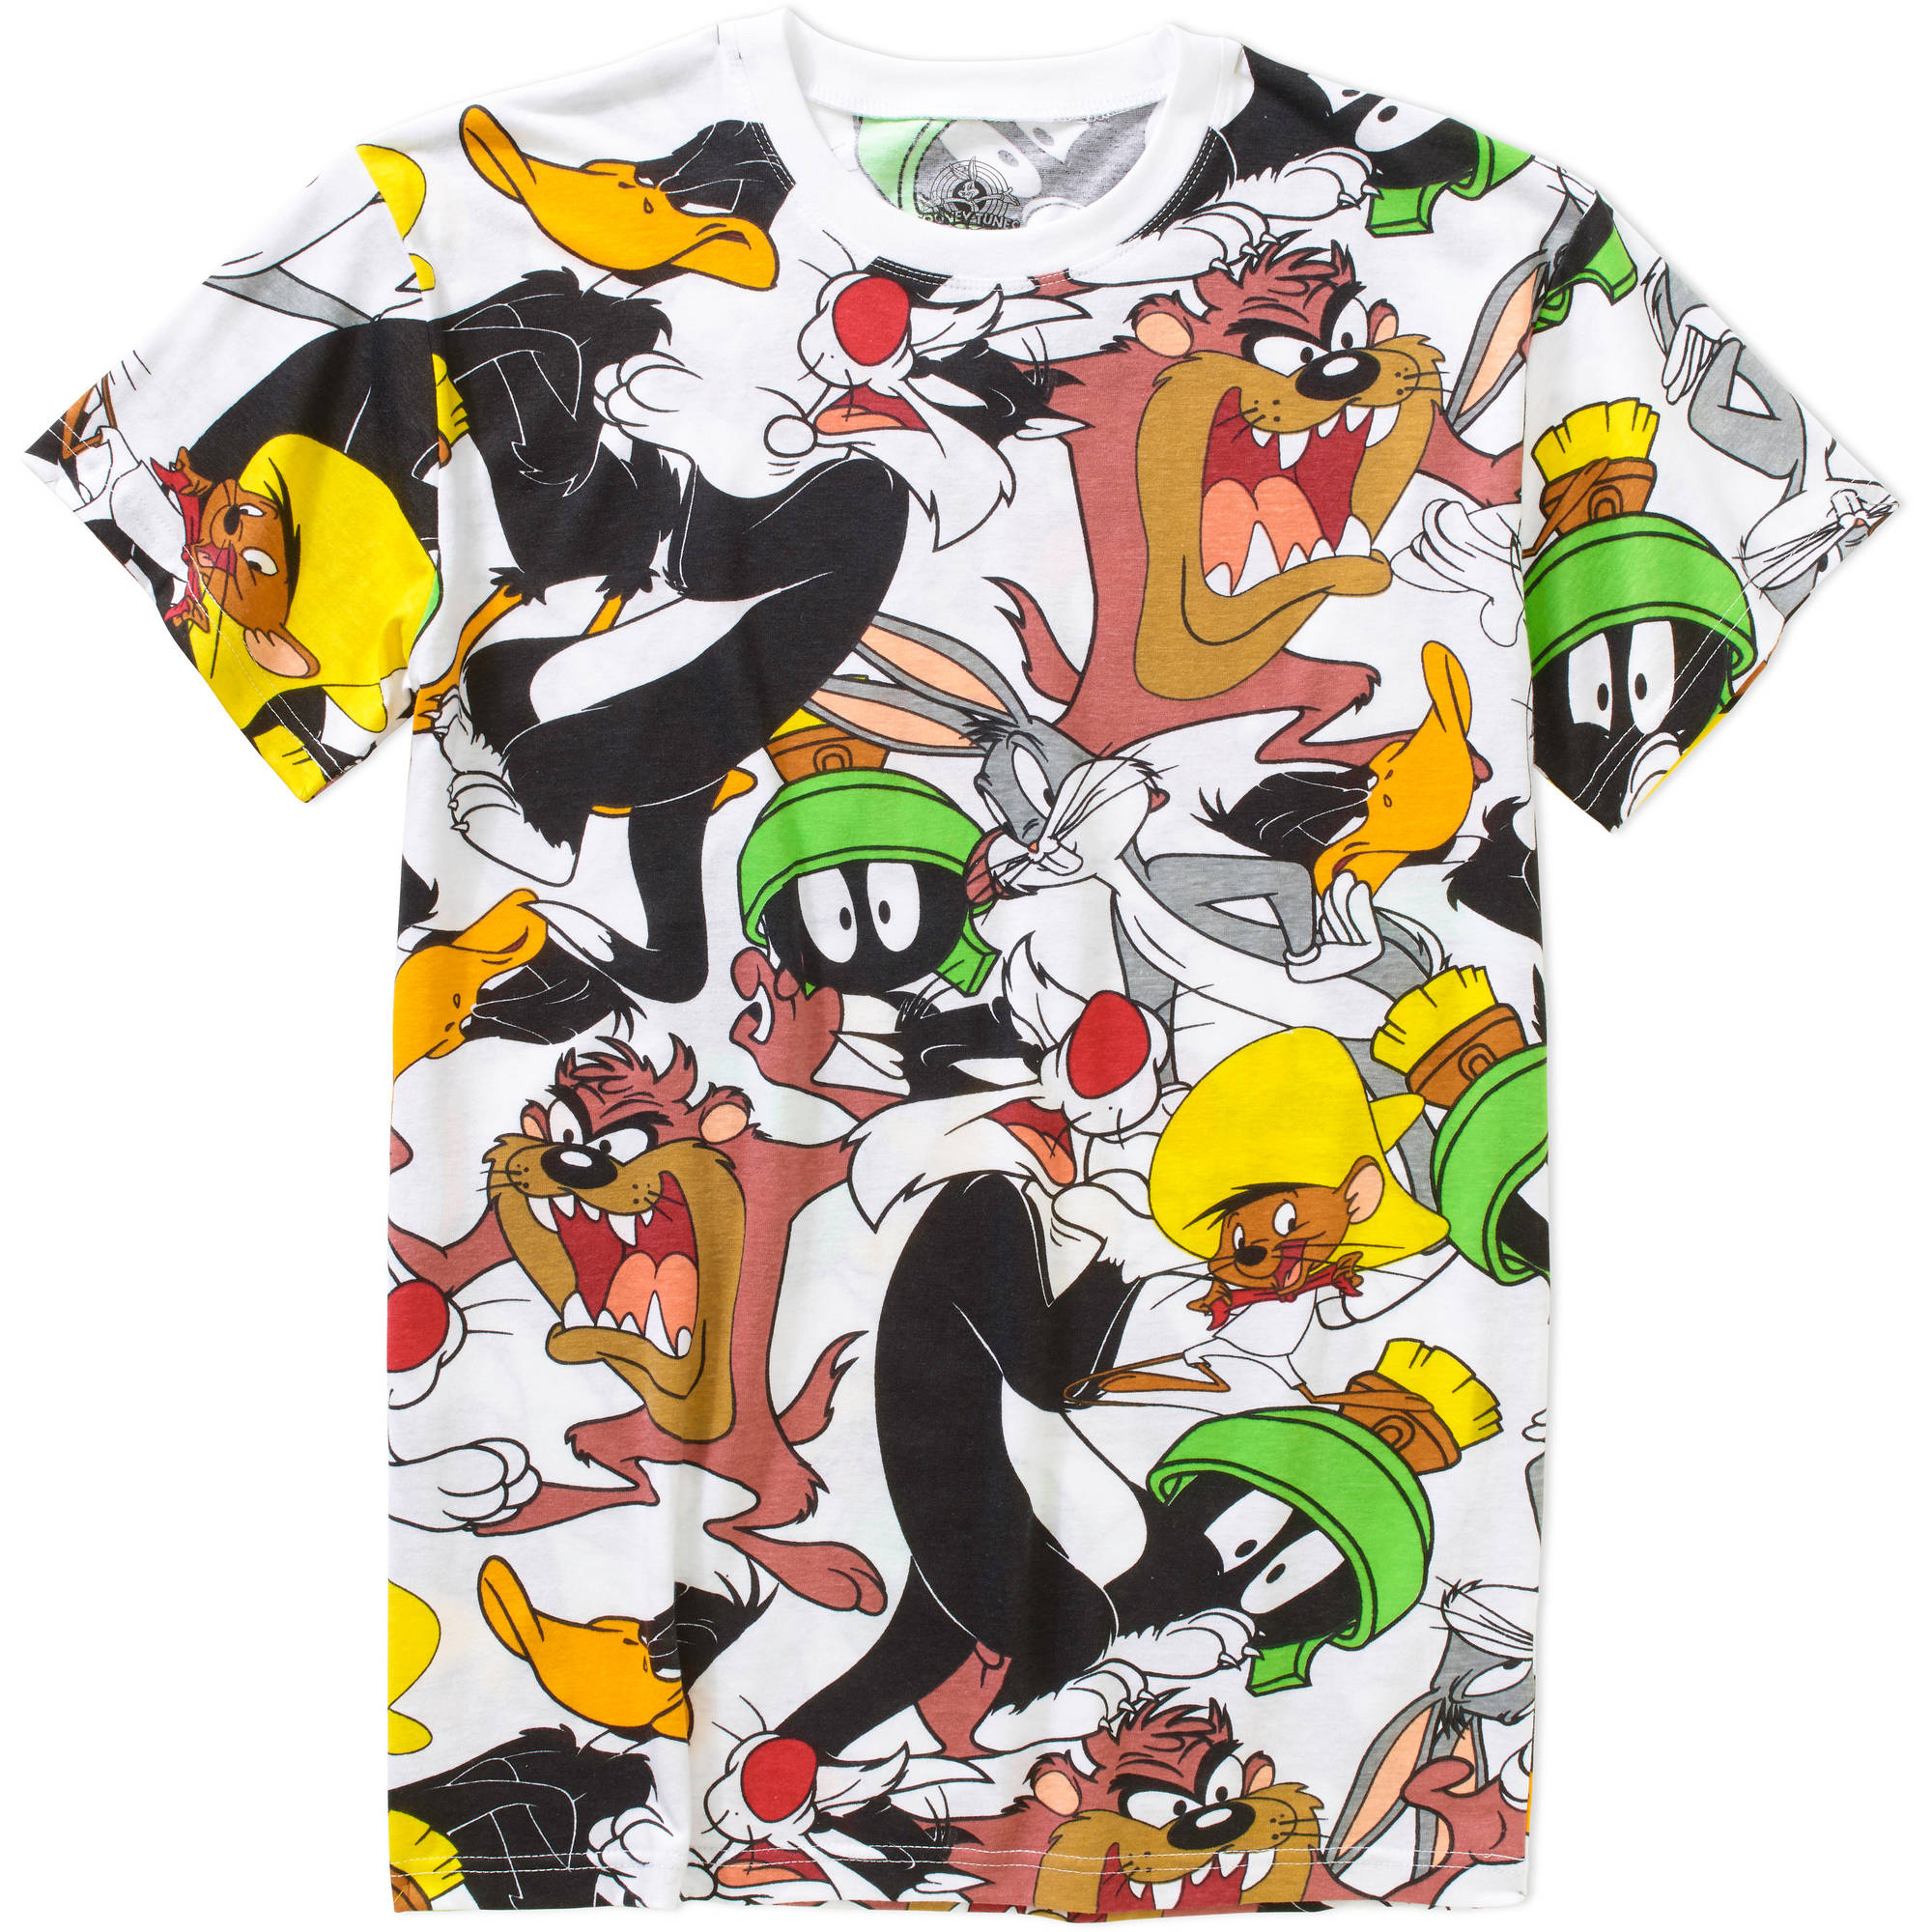 Looney Tunes Characters All Over Printed Men's Graphic Tee